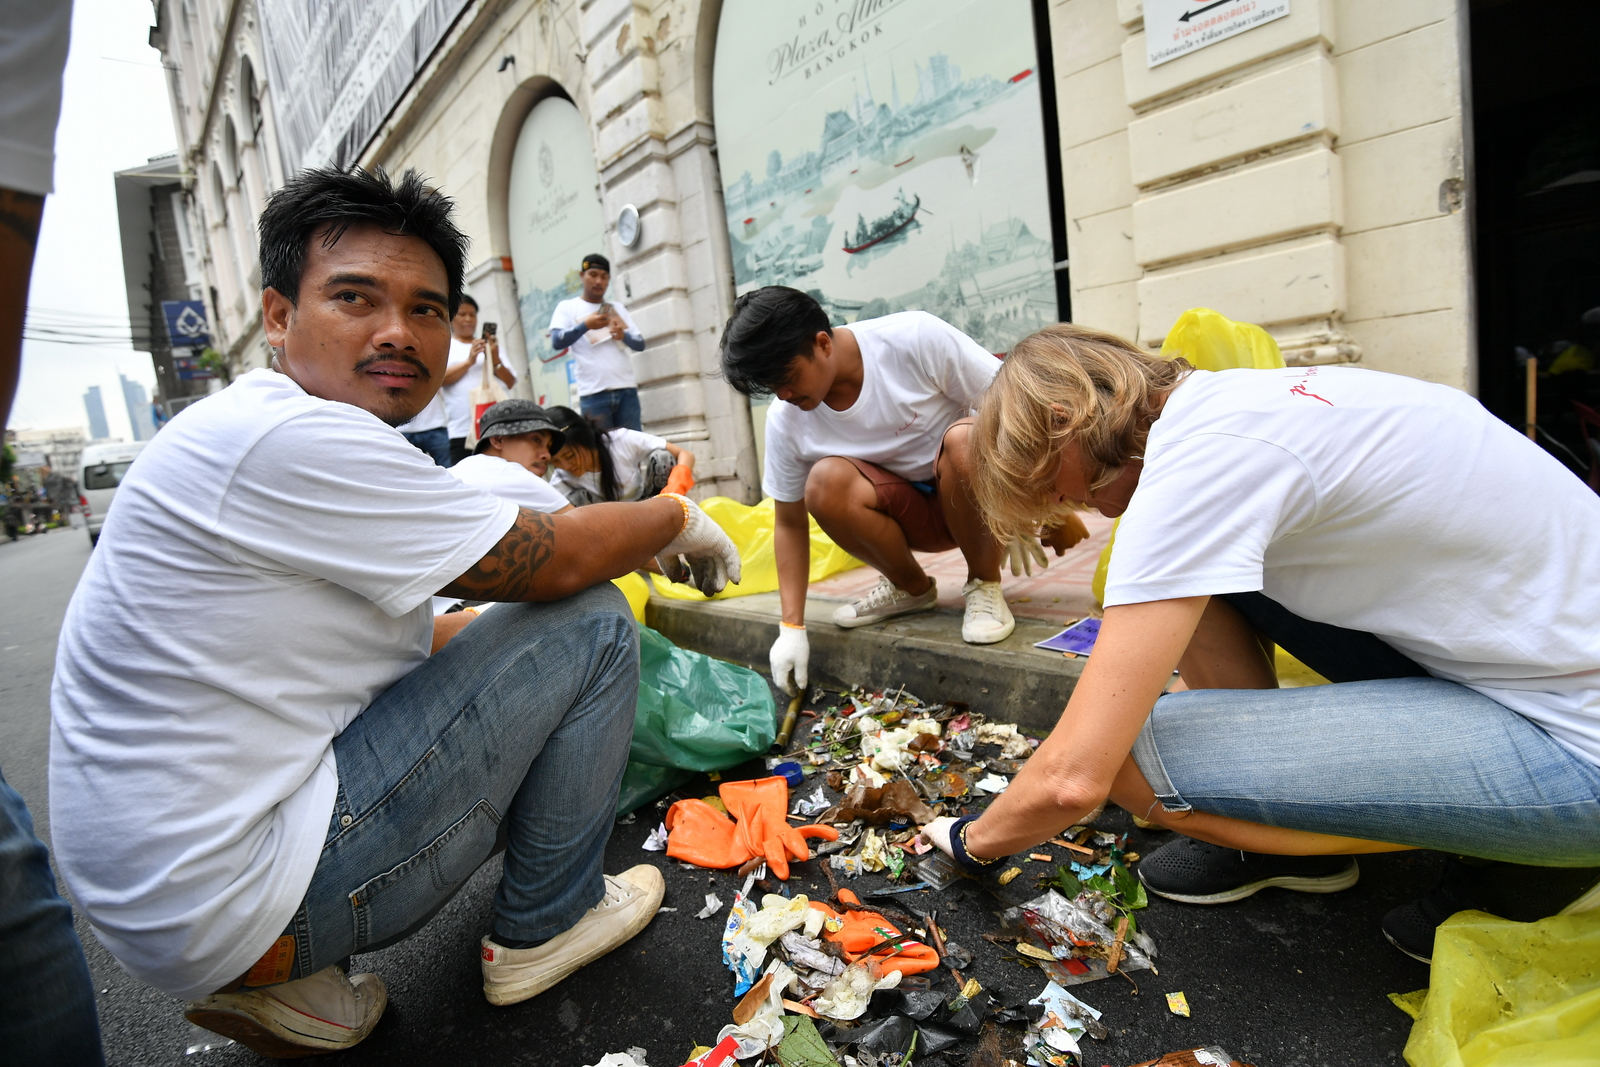 PTendercool-Event-Clean Up The World-190921-125